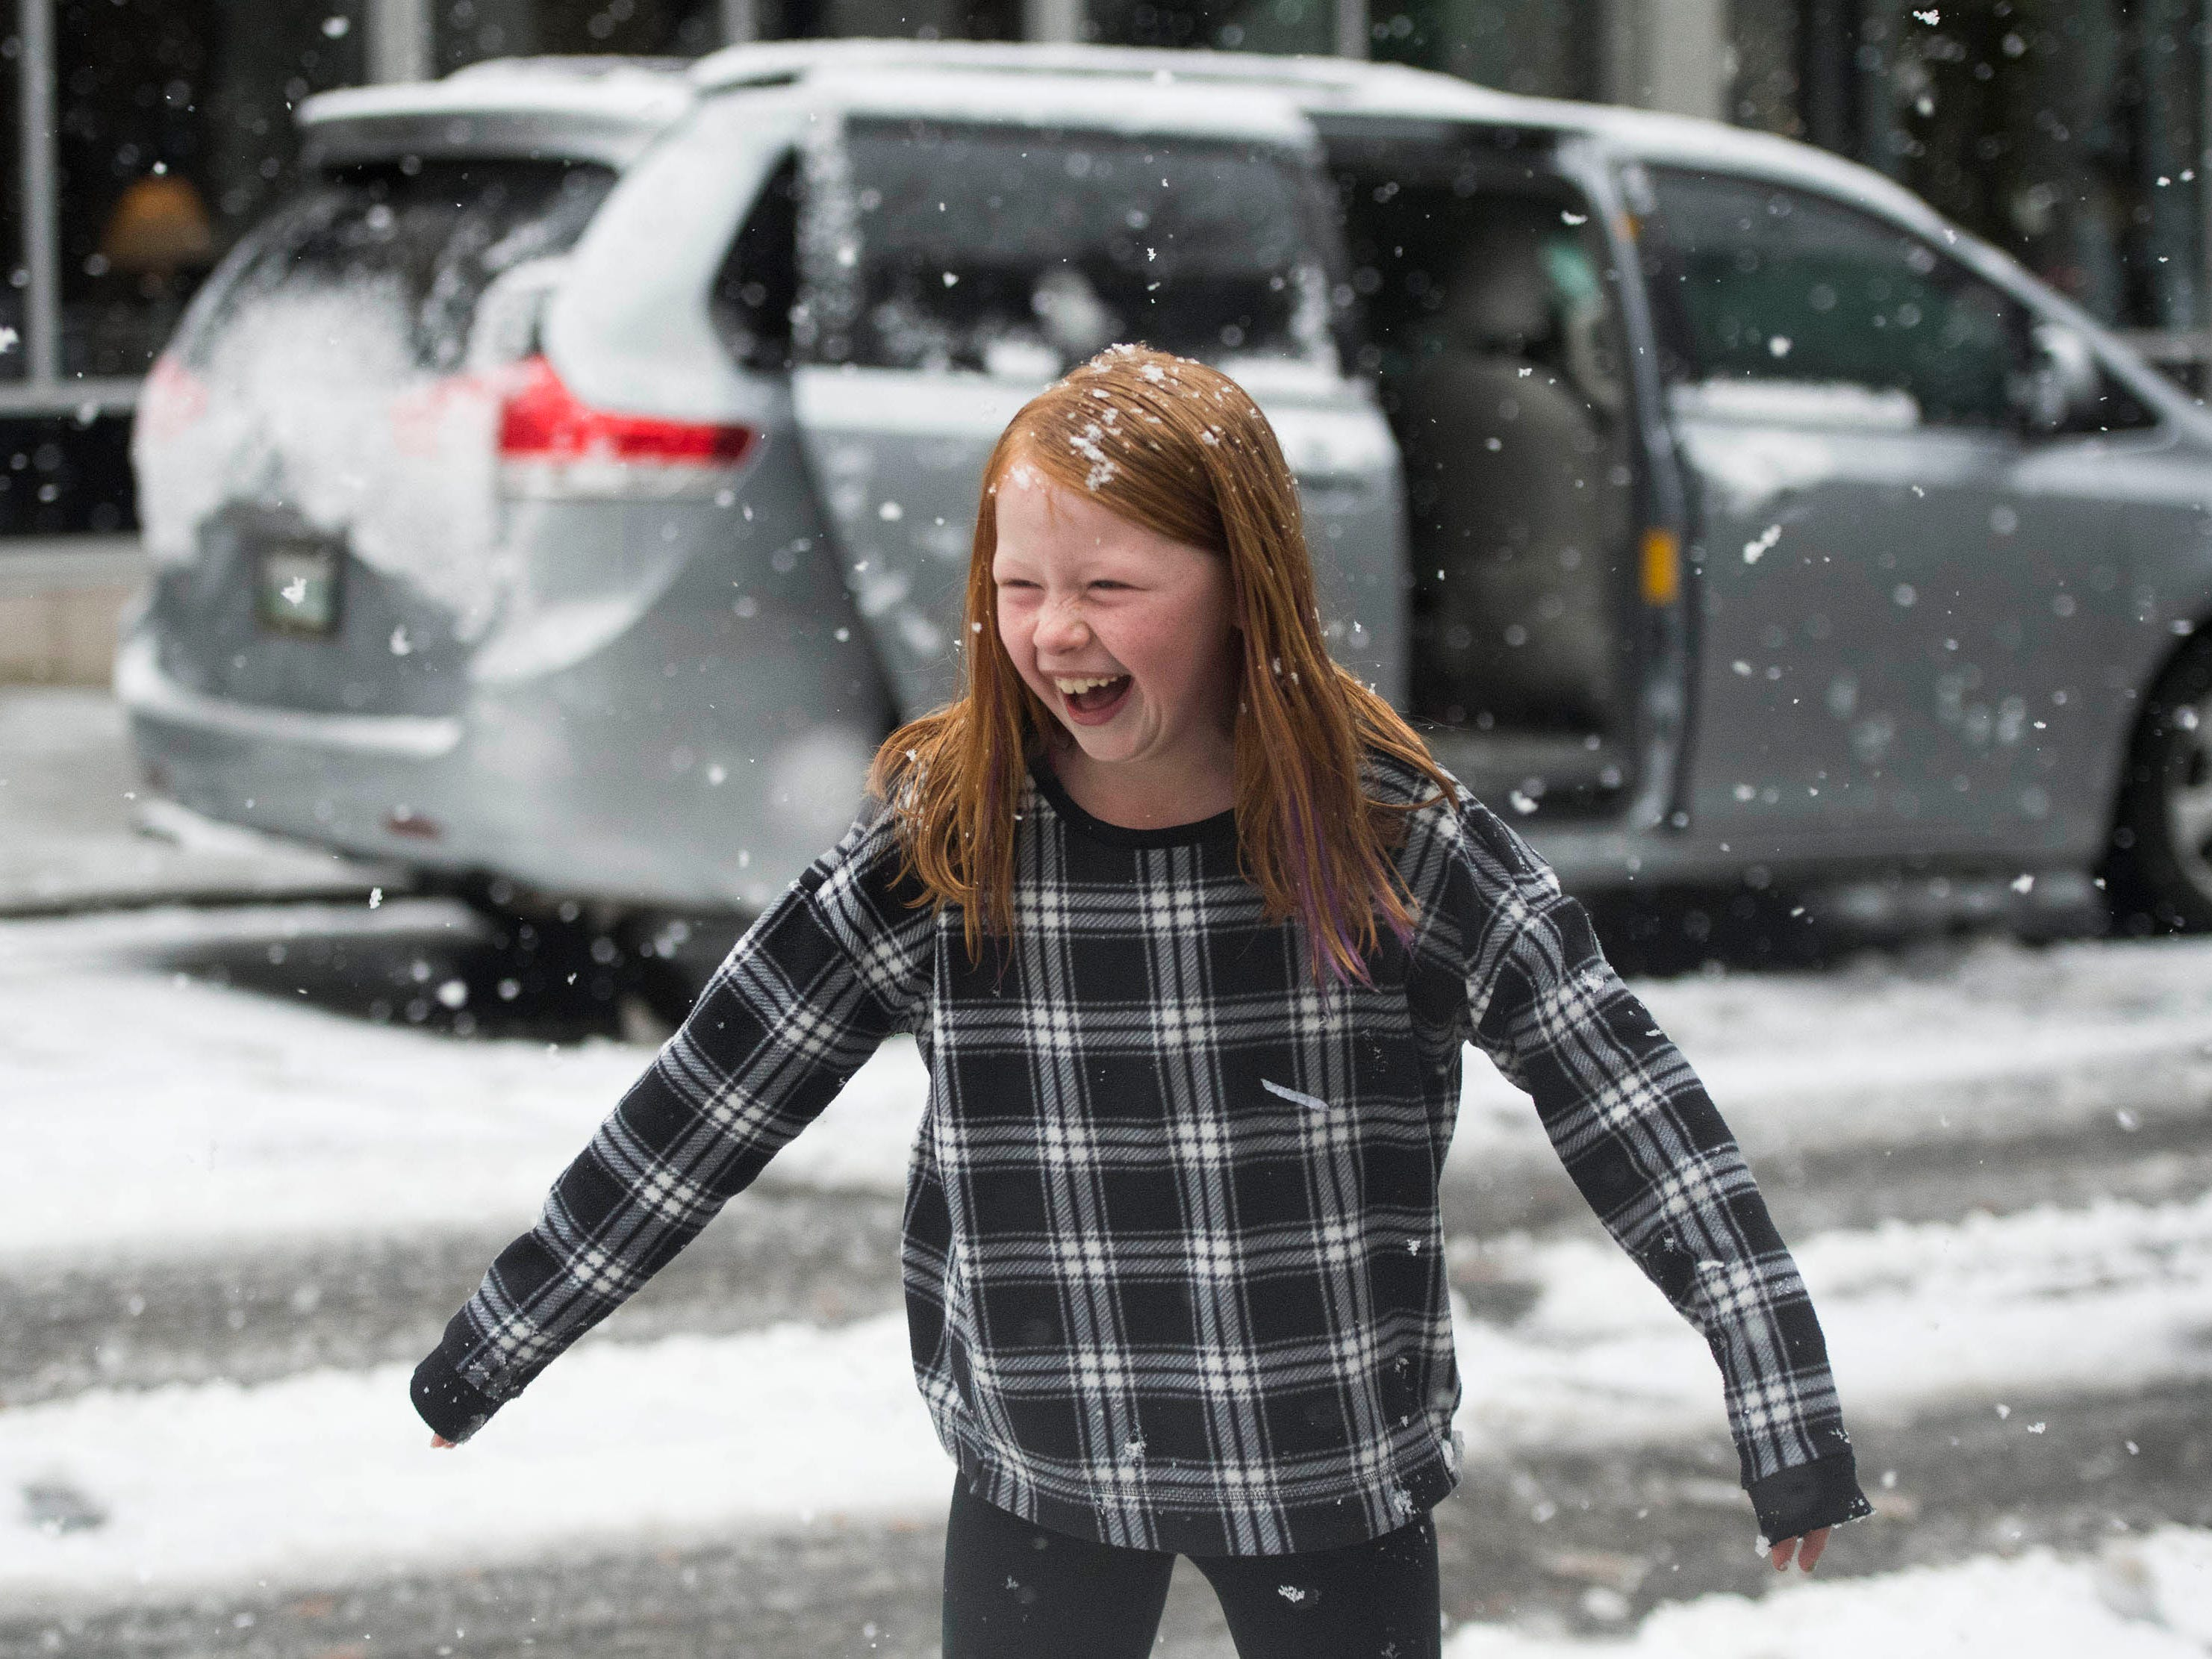 Emilia Eveland laughs during a snow fight between her brothers and dad in Downtown Knoxville, Tenn. on Dec. 9.